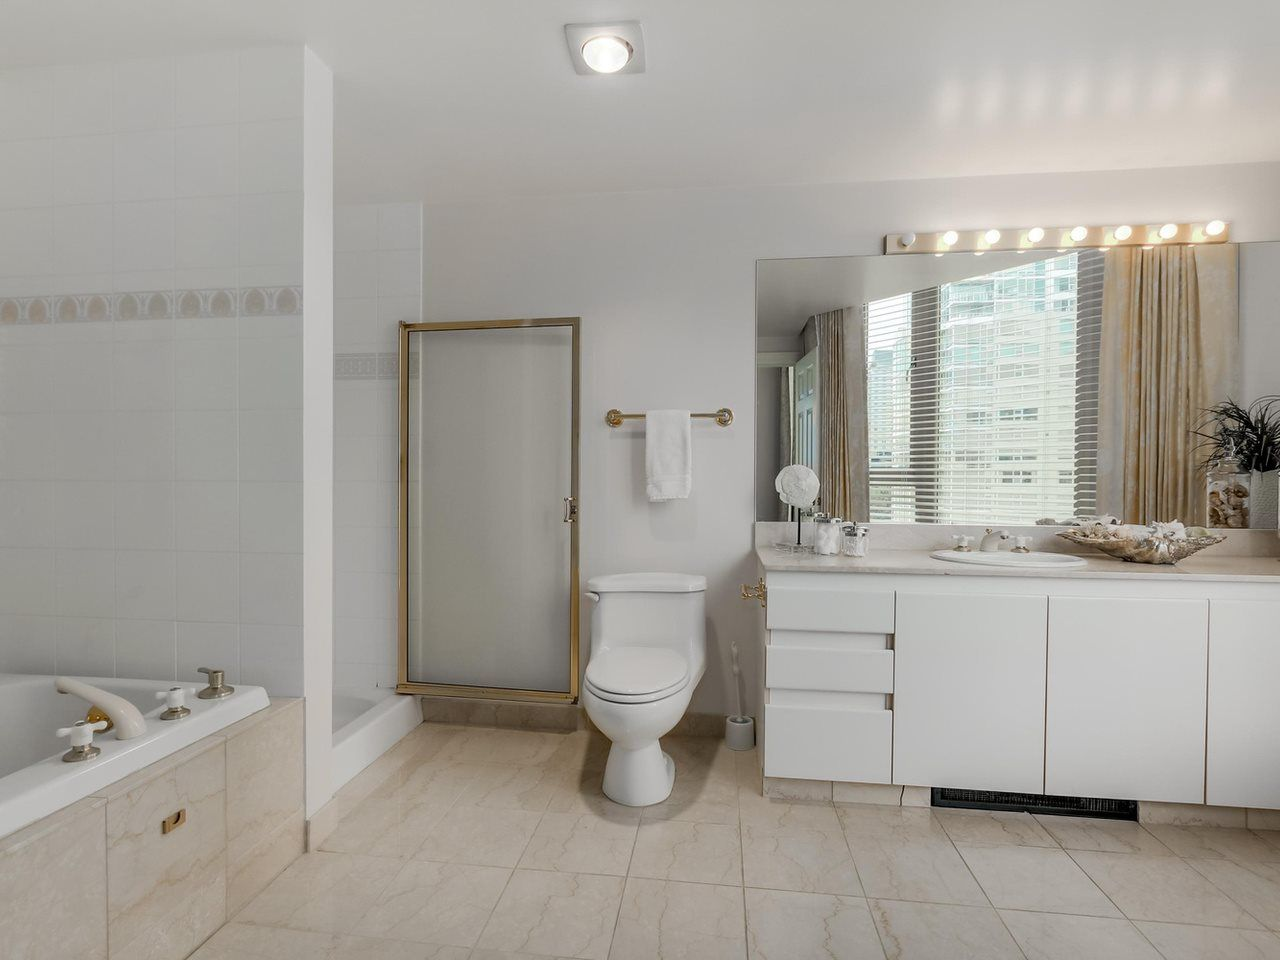 """Photo 19: Photos: 800 1675 HORNBY Street in Vancouver: Yaletown Condo for sale in """"SEAWALK SOUTH"""" (Vancouver West)  : MLS®# R2083569"""